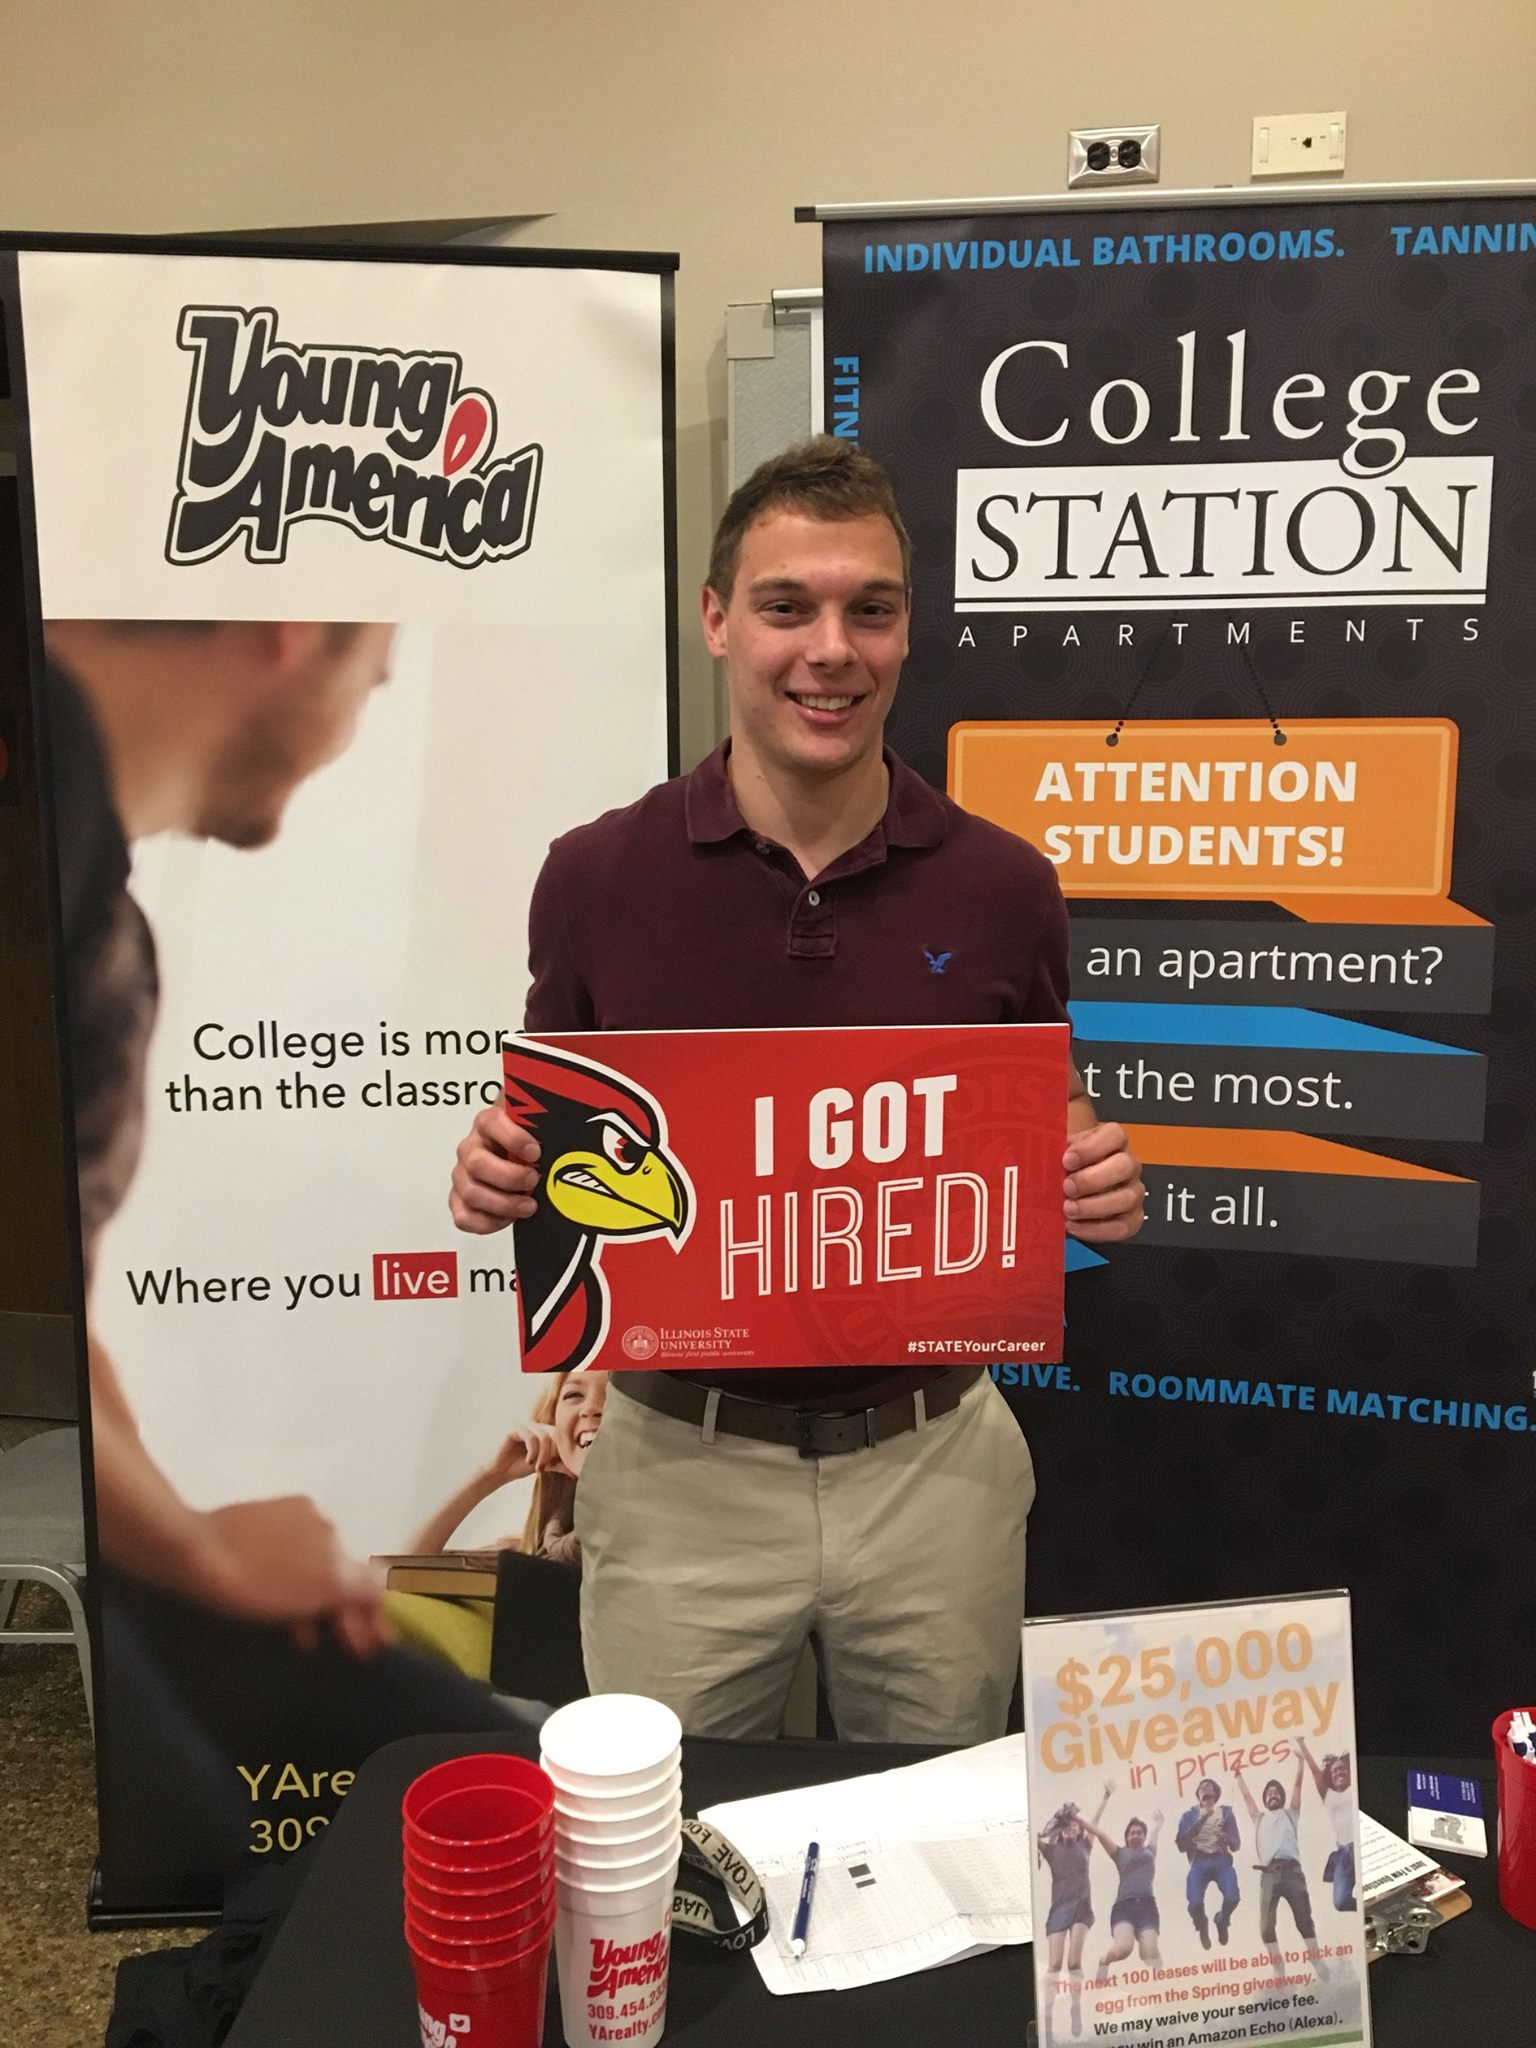 Congratulations to Michael Czaja, a finance major who will be working this summer for Walsh Construction Company. #STATEYourCareer! https://t.co/DAvF9D2C0w